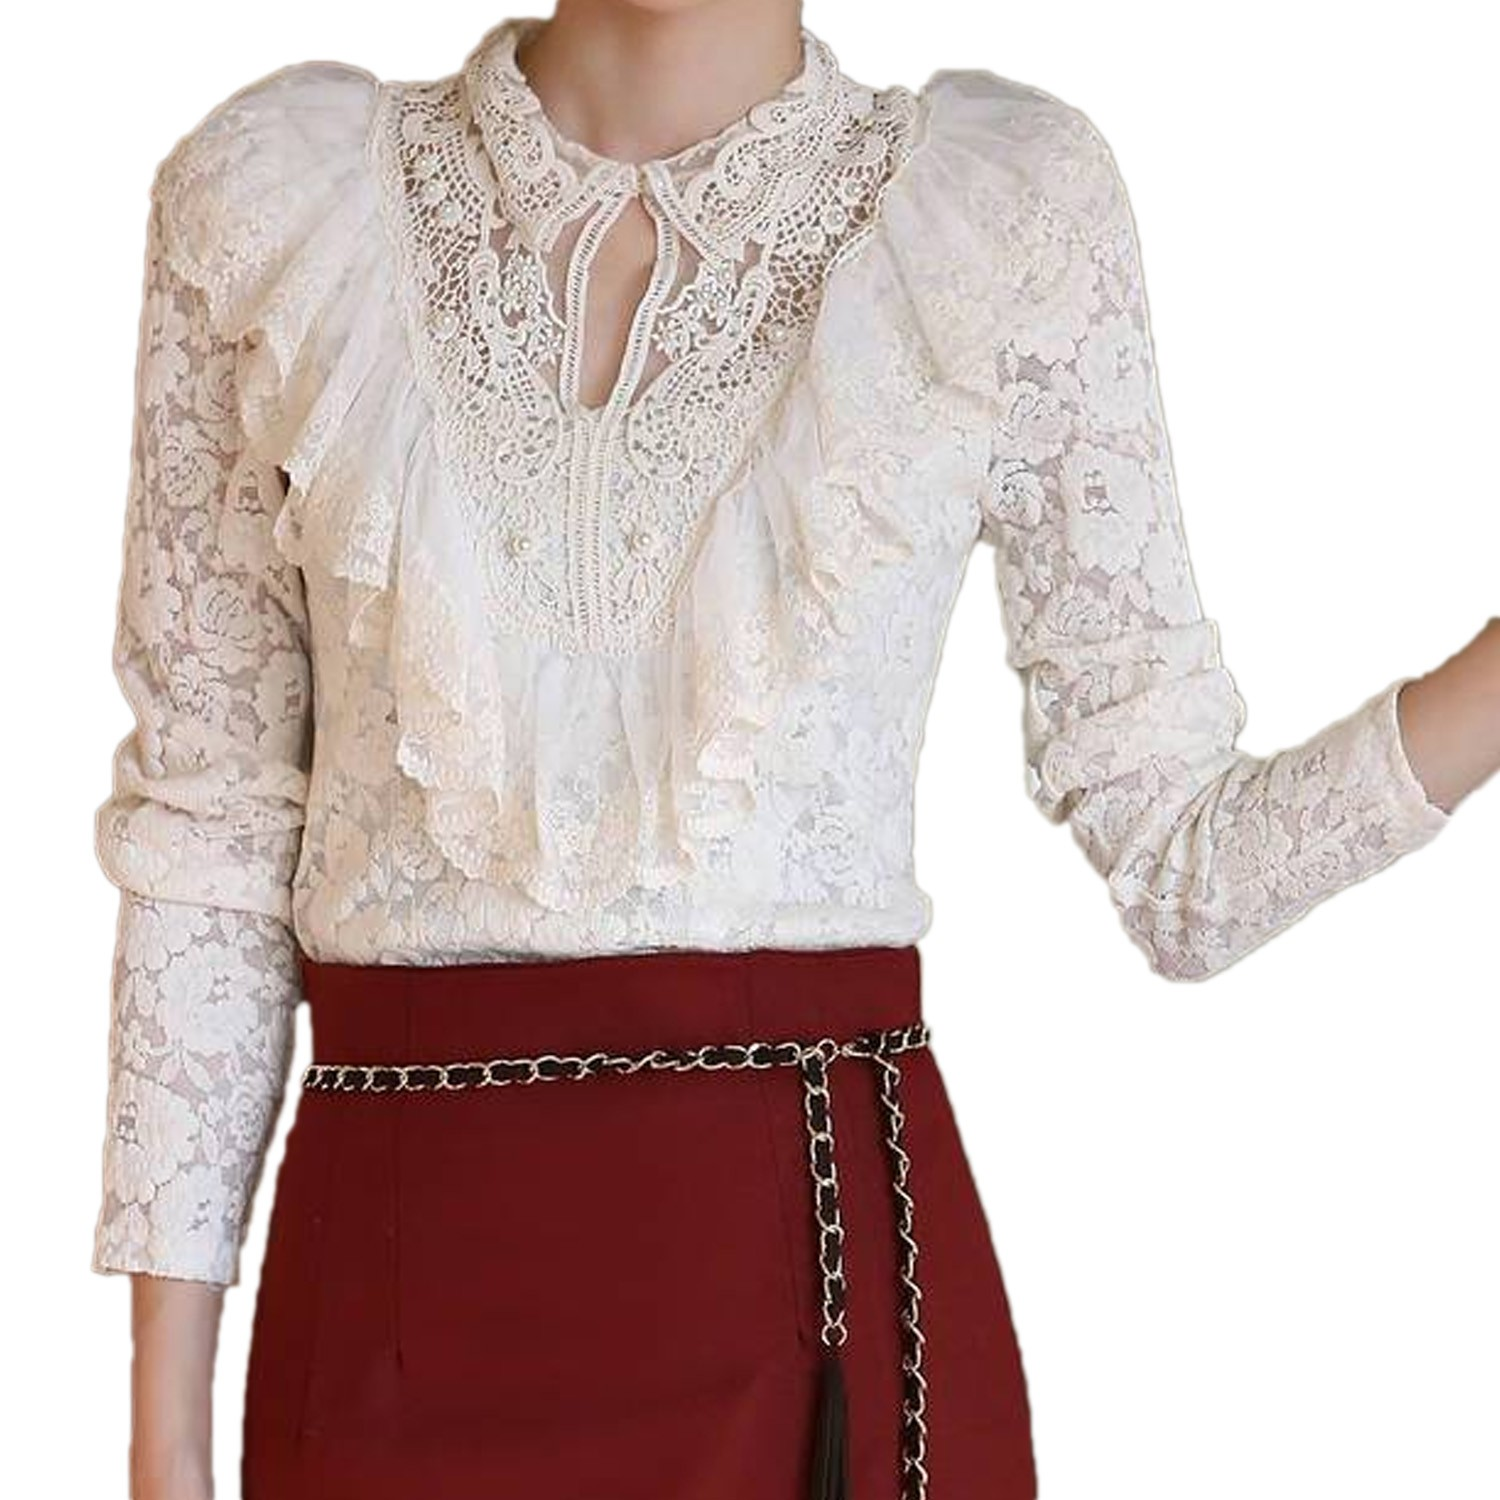 Womens VTG White Victorian Long Sleeve Lace Shirt Blouse Top Size XS-L 0 2 4 6